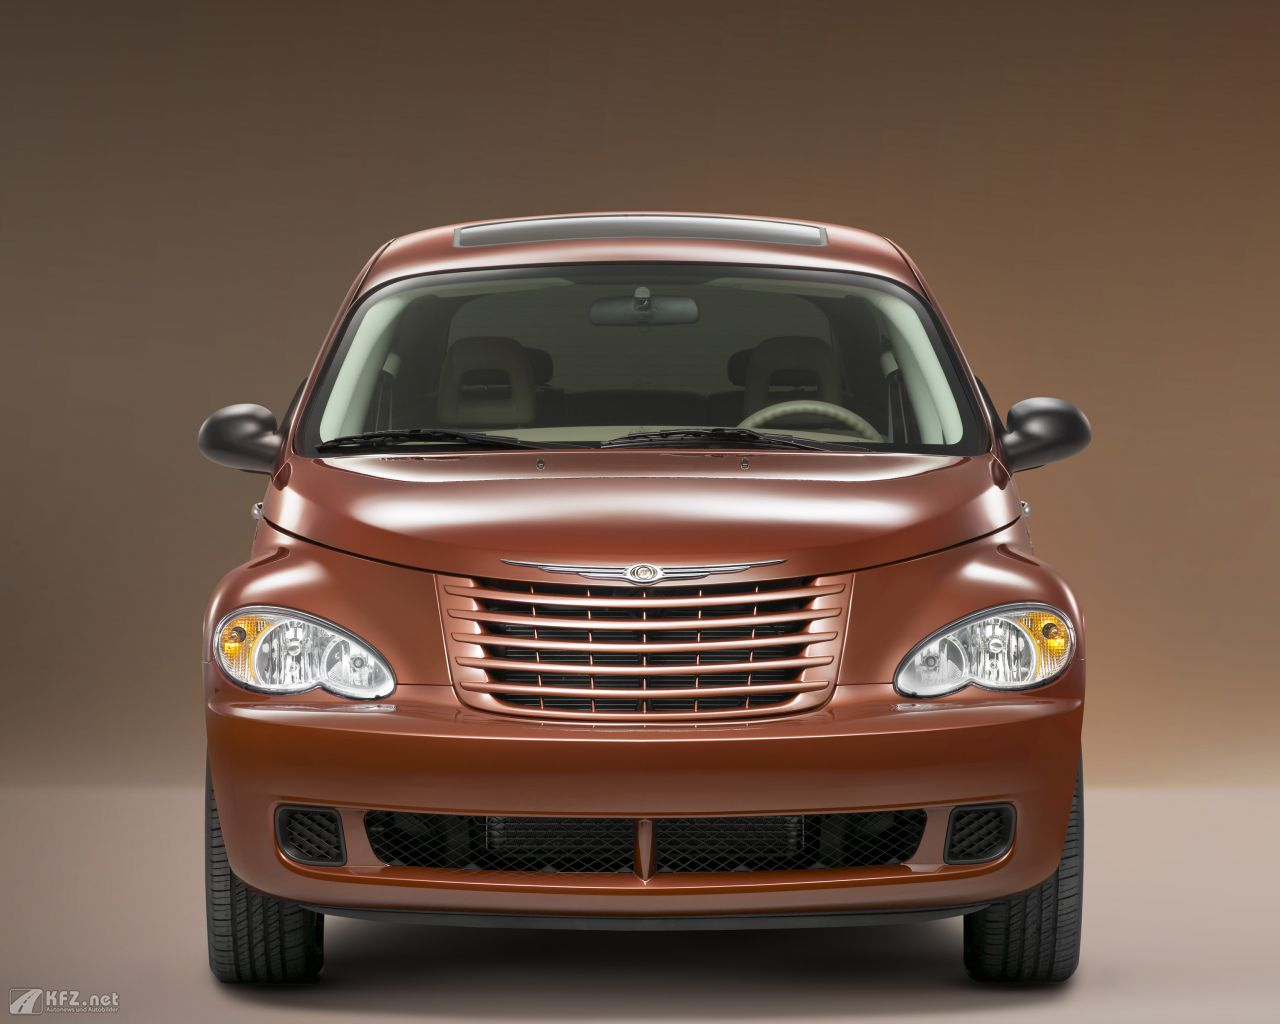 chrysler-pt-cruiser-1280x1024-5